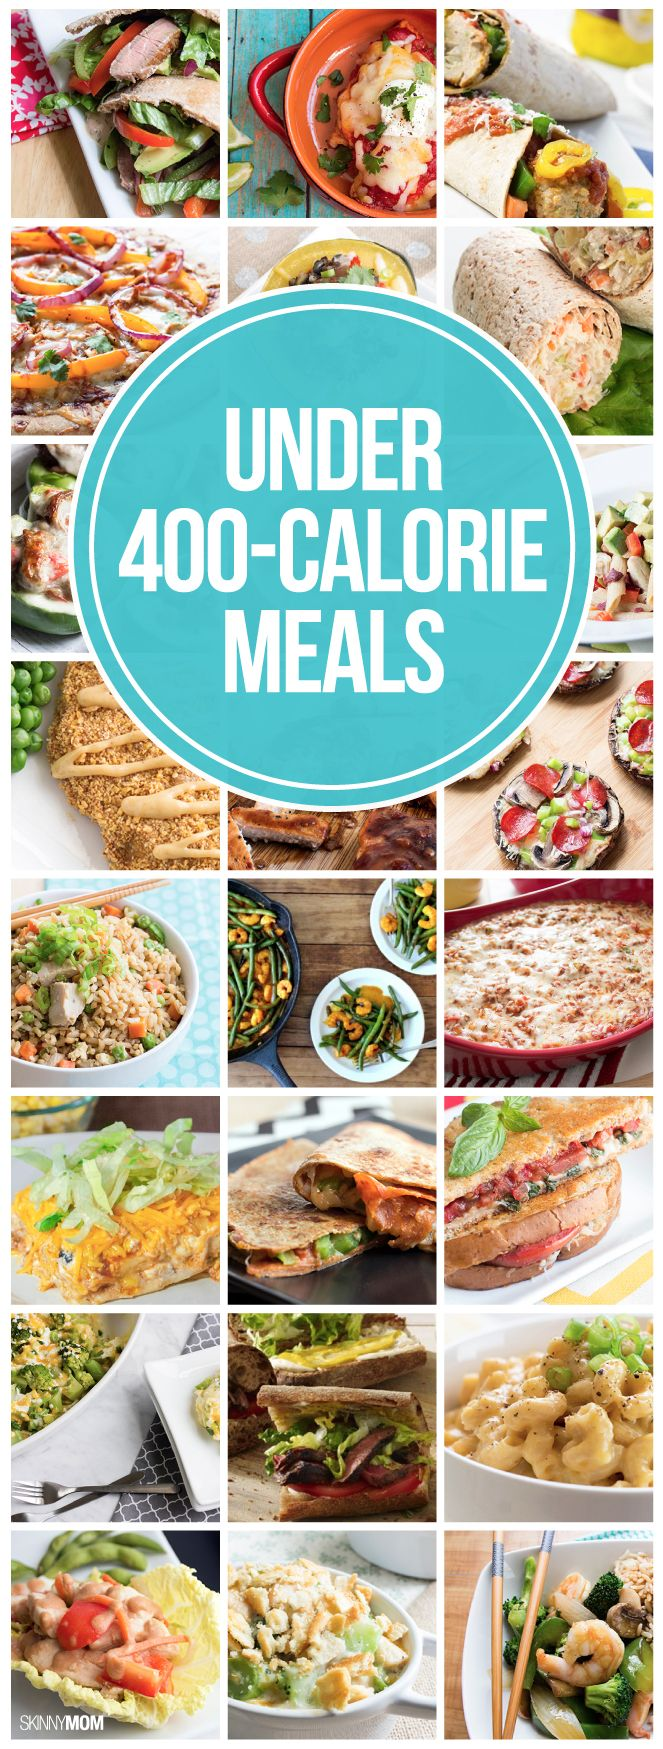 RECIPES UNDER 400 CALORIES: 40 dinners your family will LOVE! Which recipe are you most excited to try? #maincourse #recipes #dinner #easy #recipe